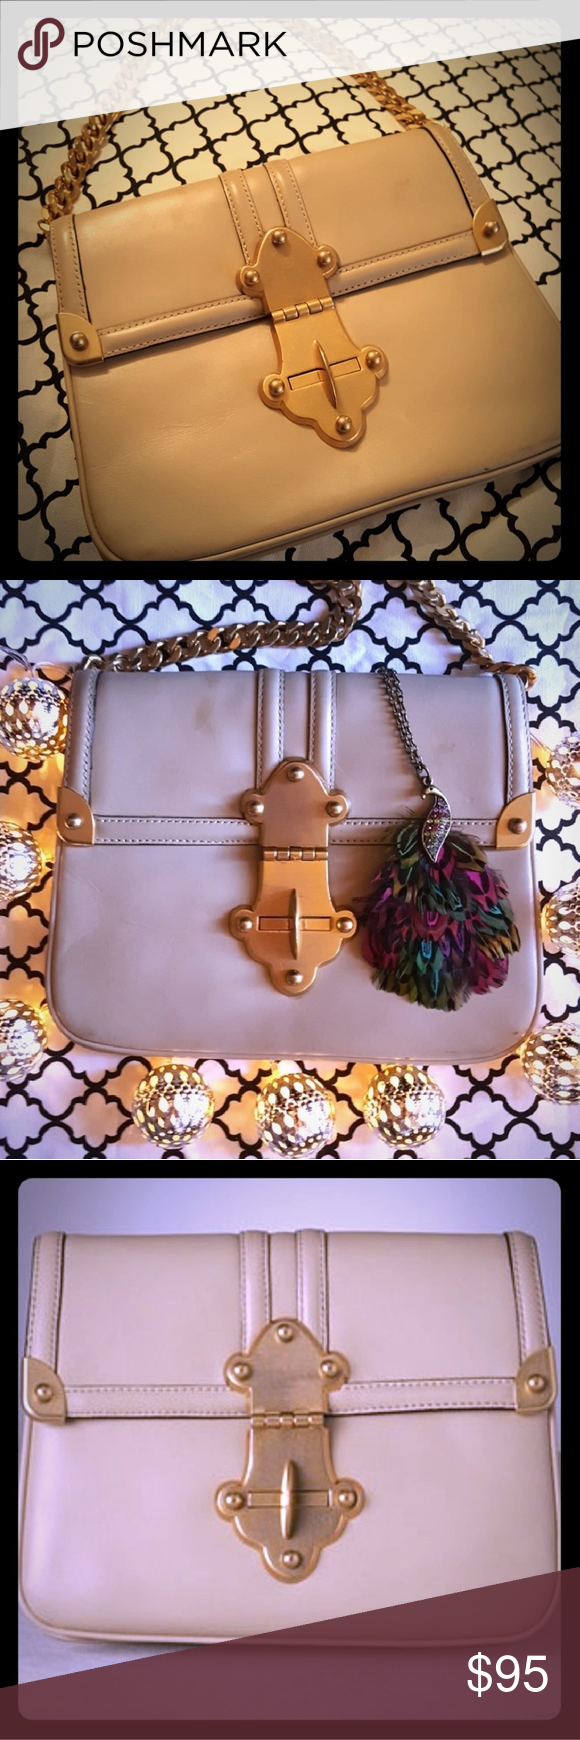 Tracy Reese Gold Chain And Leather Handbag